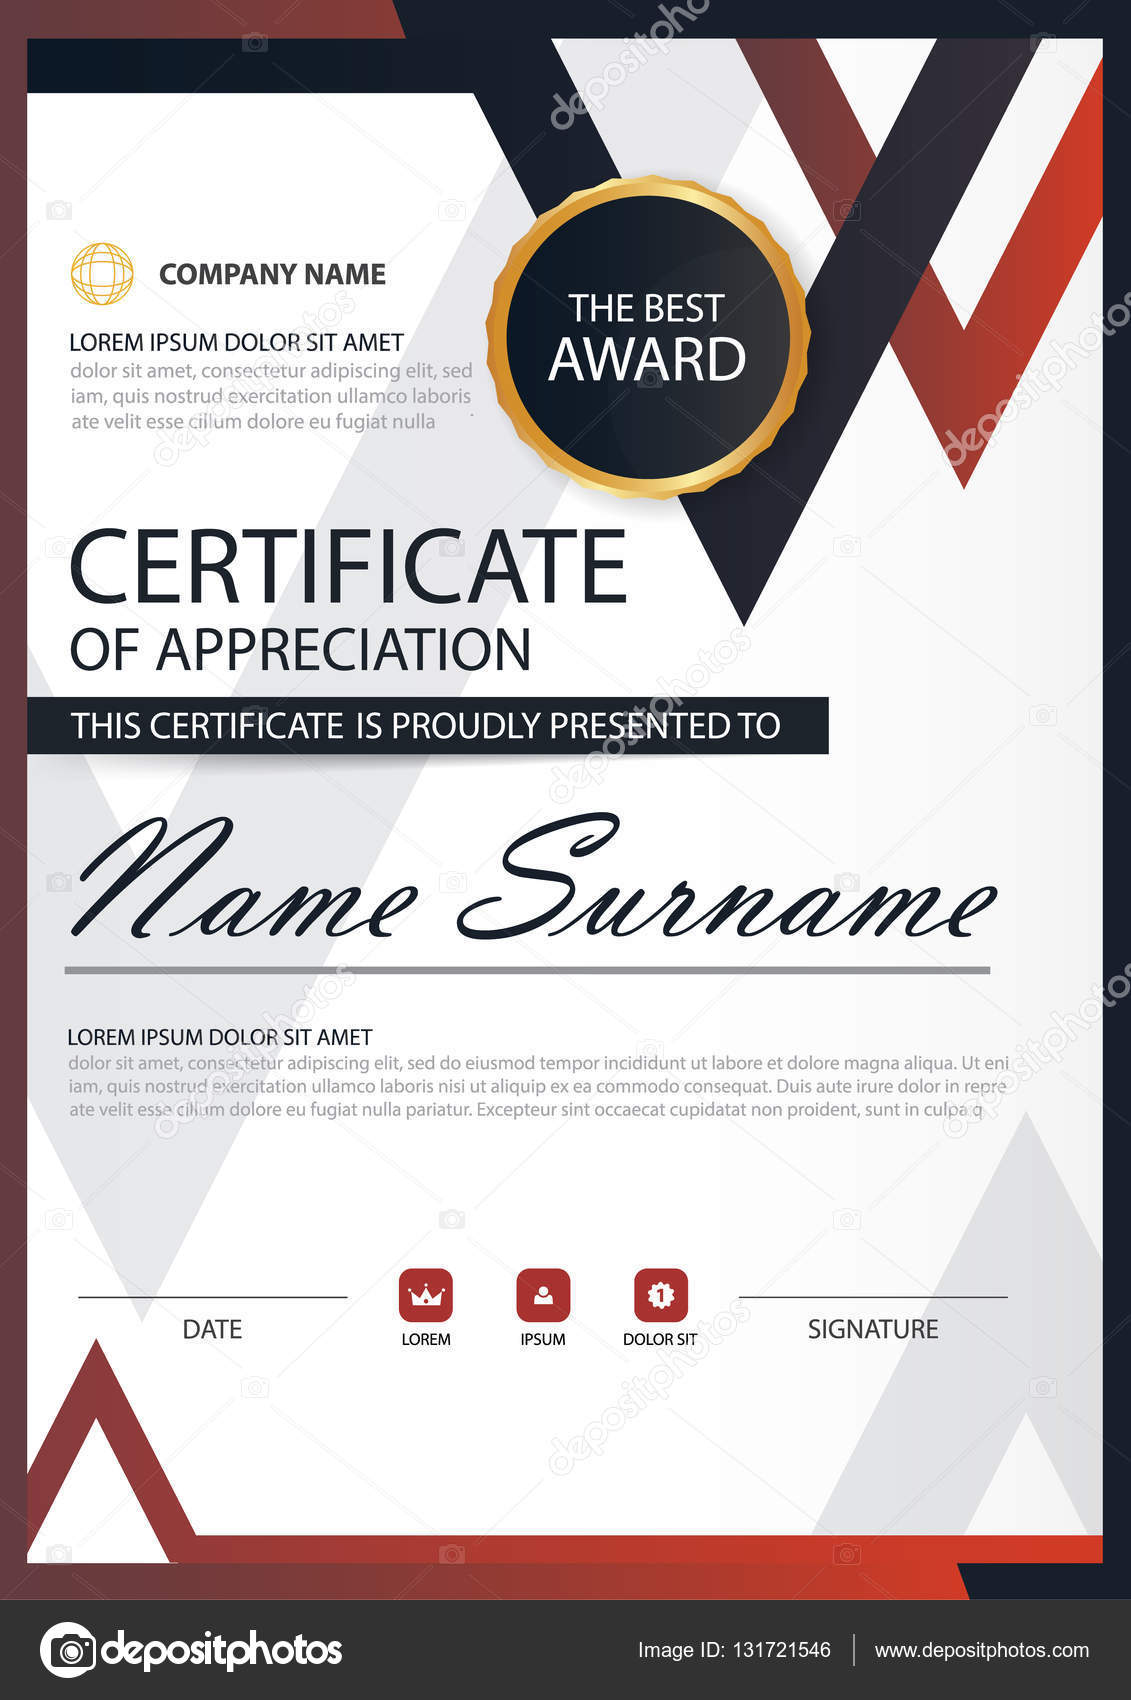 Red Black Elegance Vertical Certificate With Vector Illustration